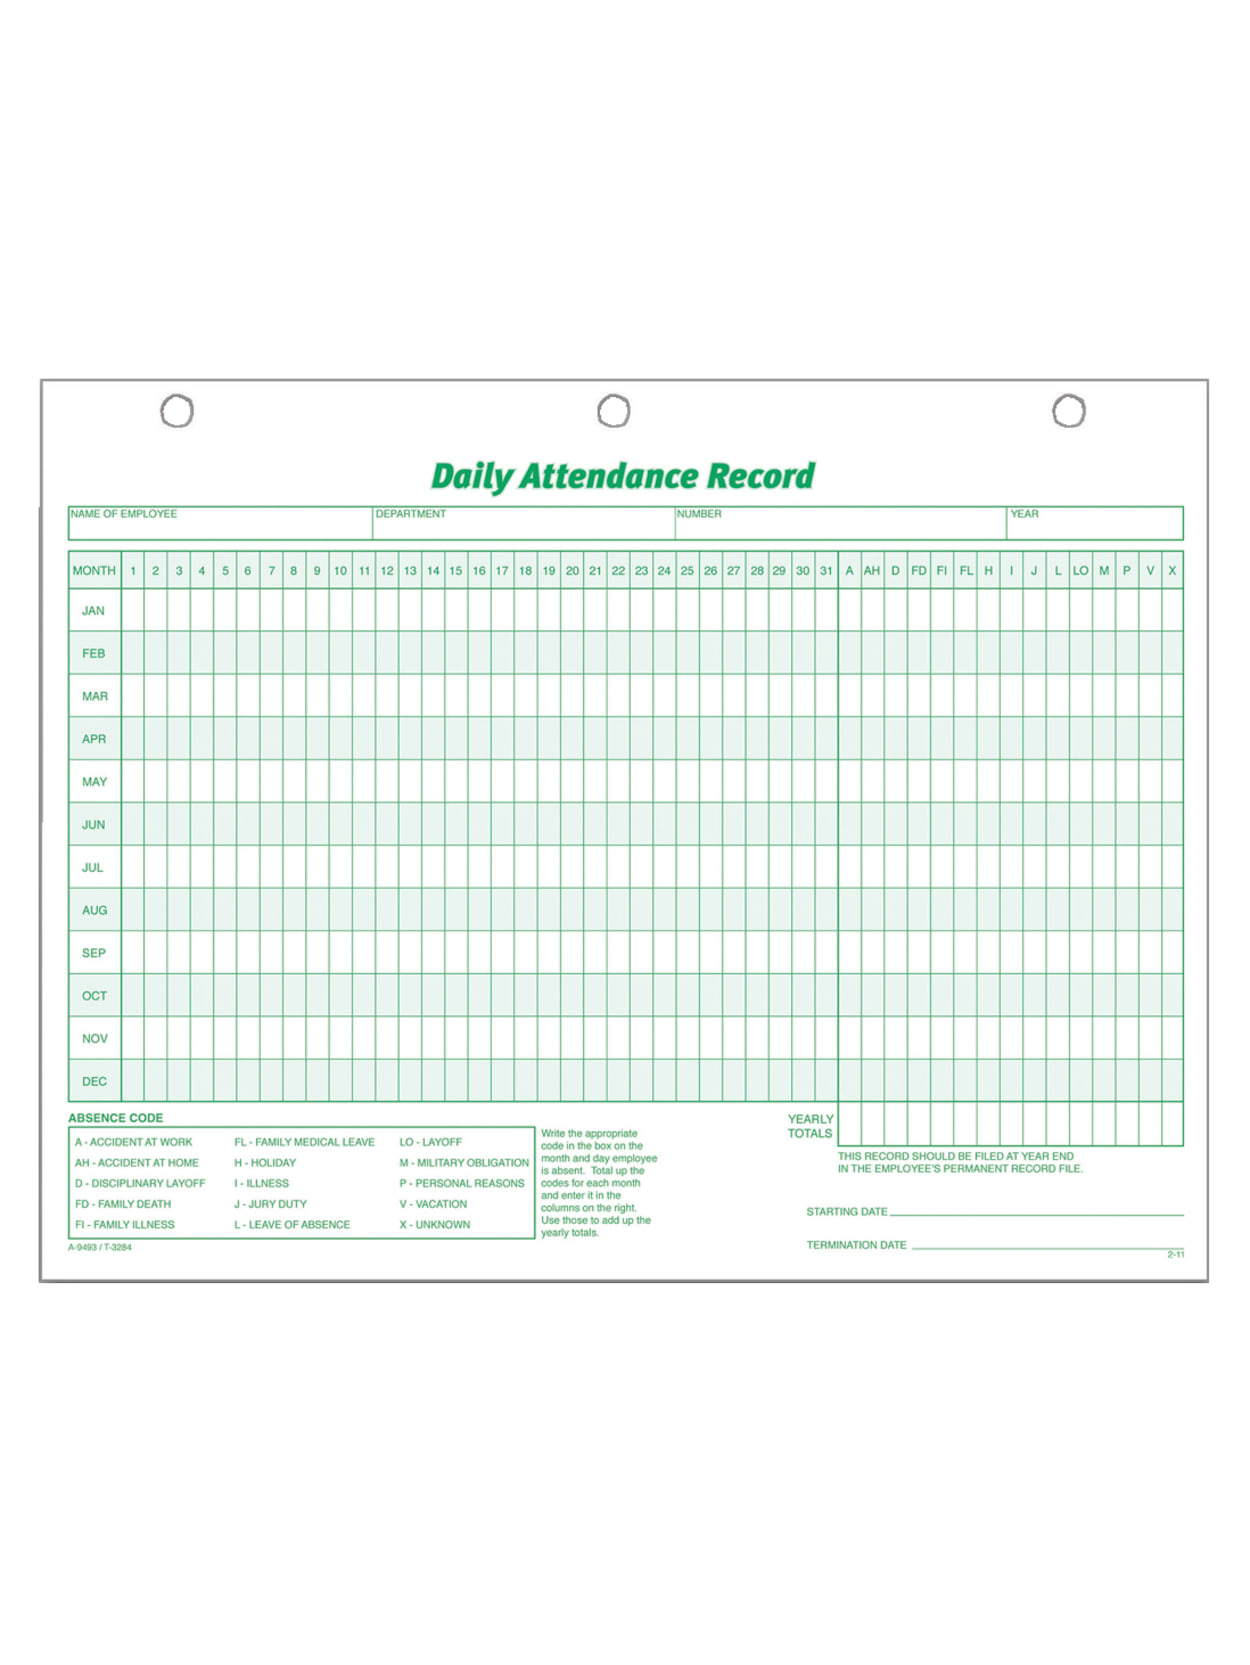 TOP3284 Tops Daily Attendance Record Form